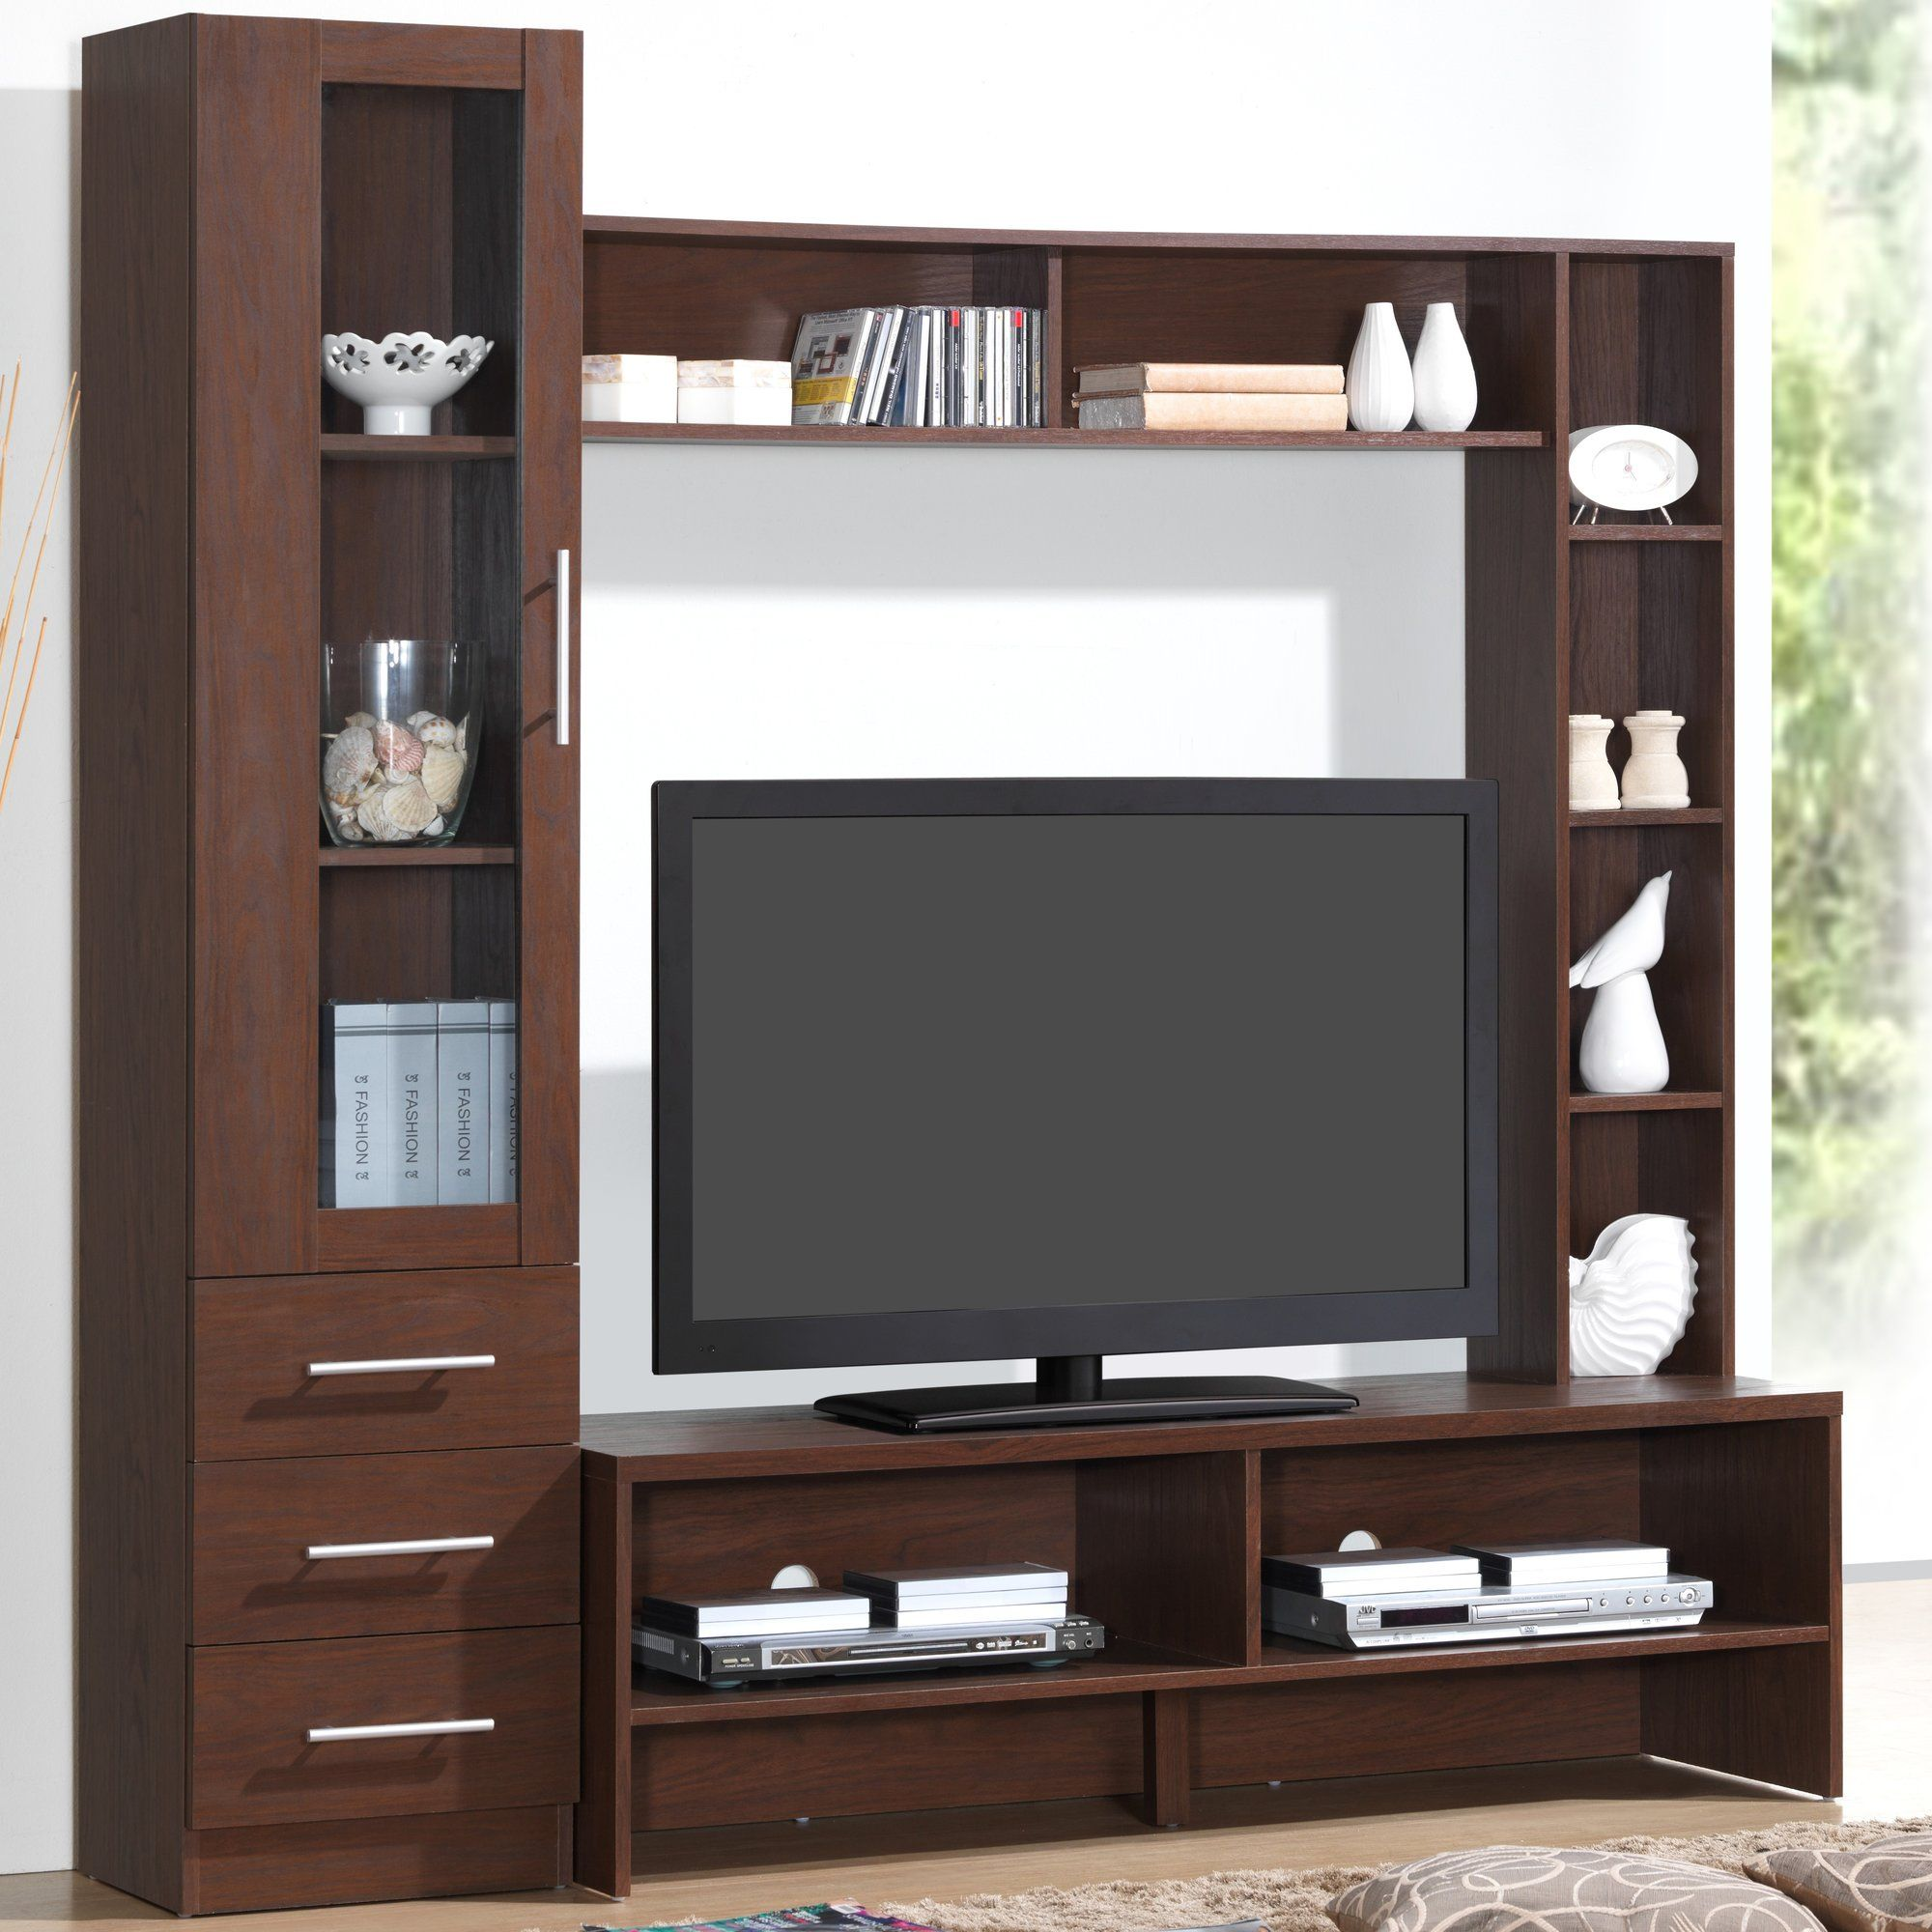 Entertainment center for our bedroom in 2019 muebles for Center mobili outlet